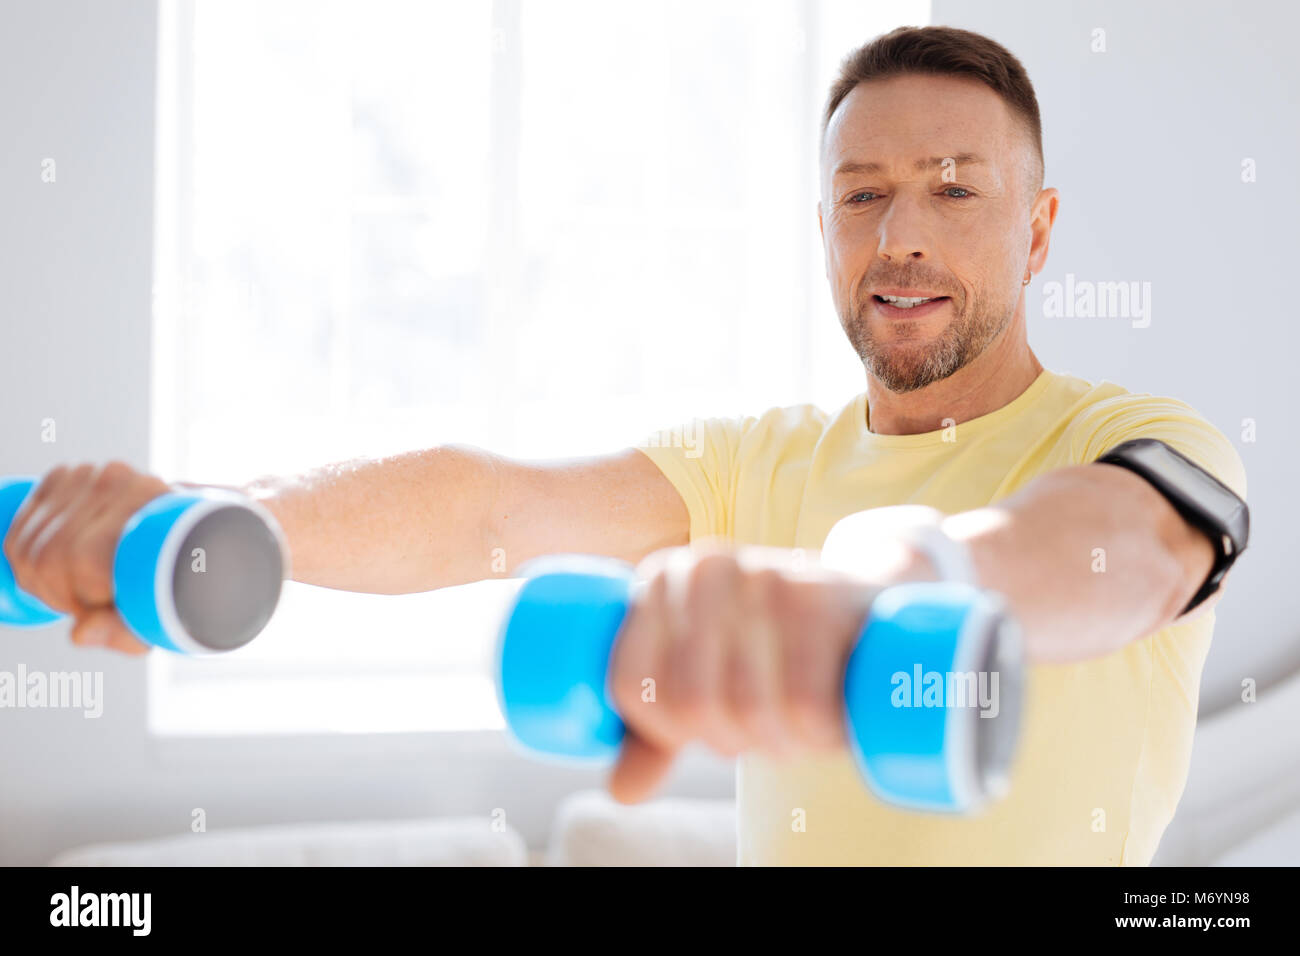 Earnest nice man working out with dumbbells - Stock Image